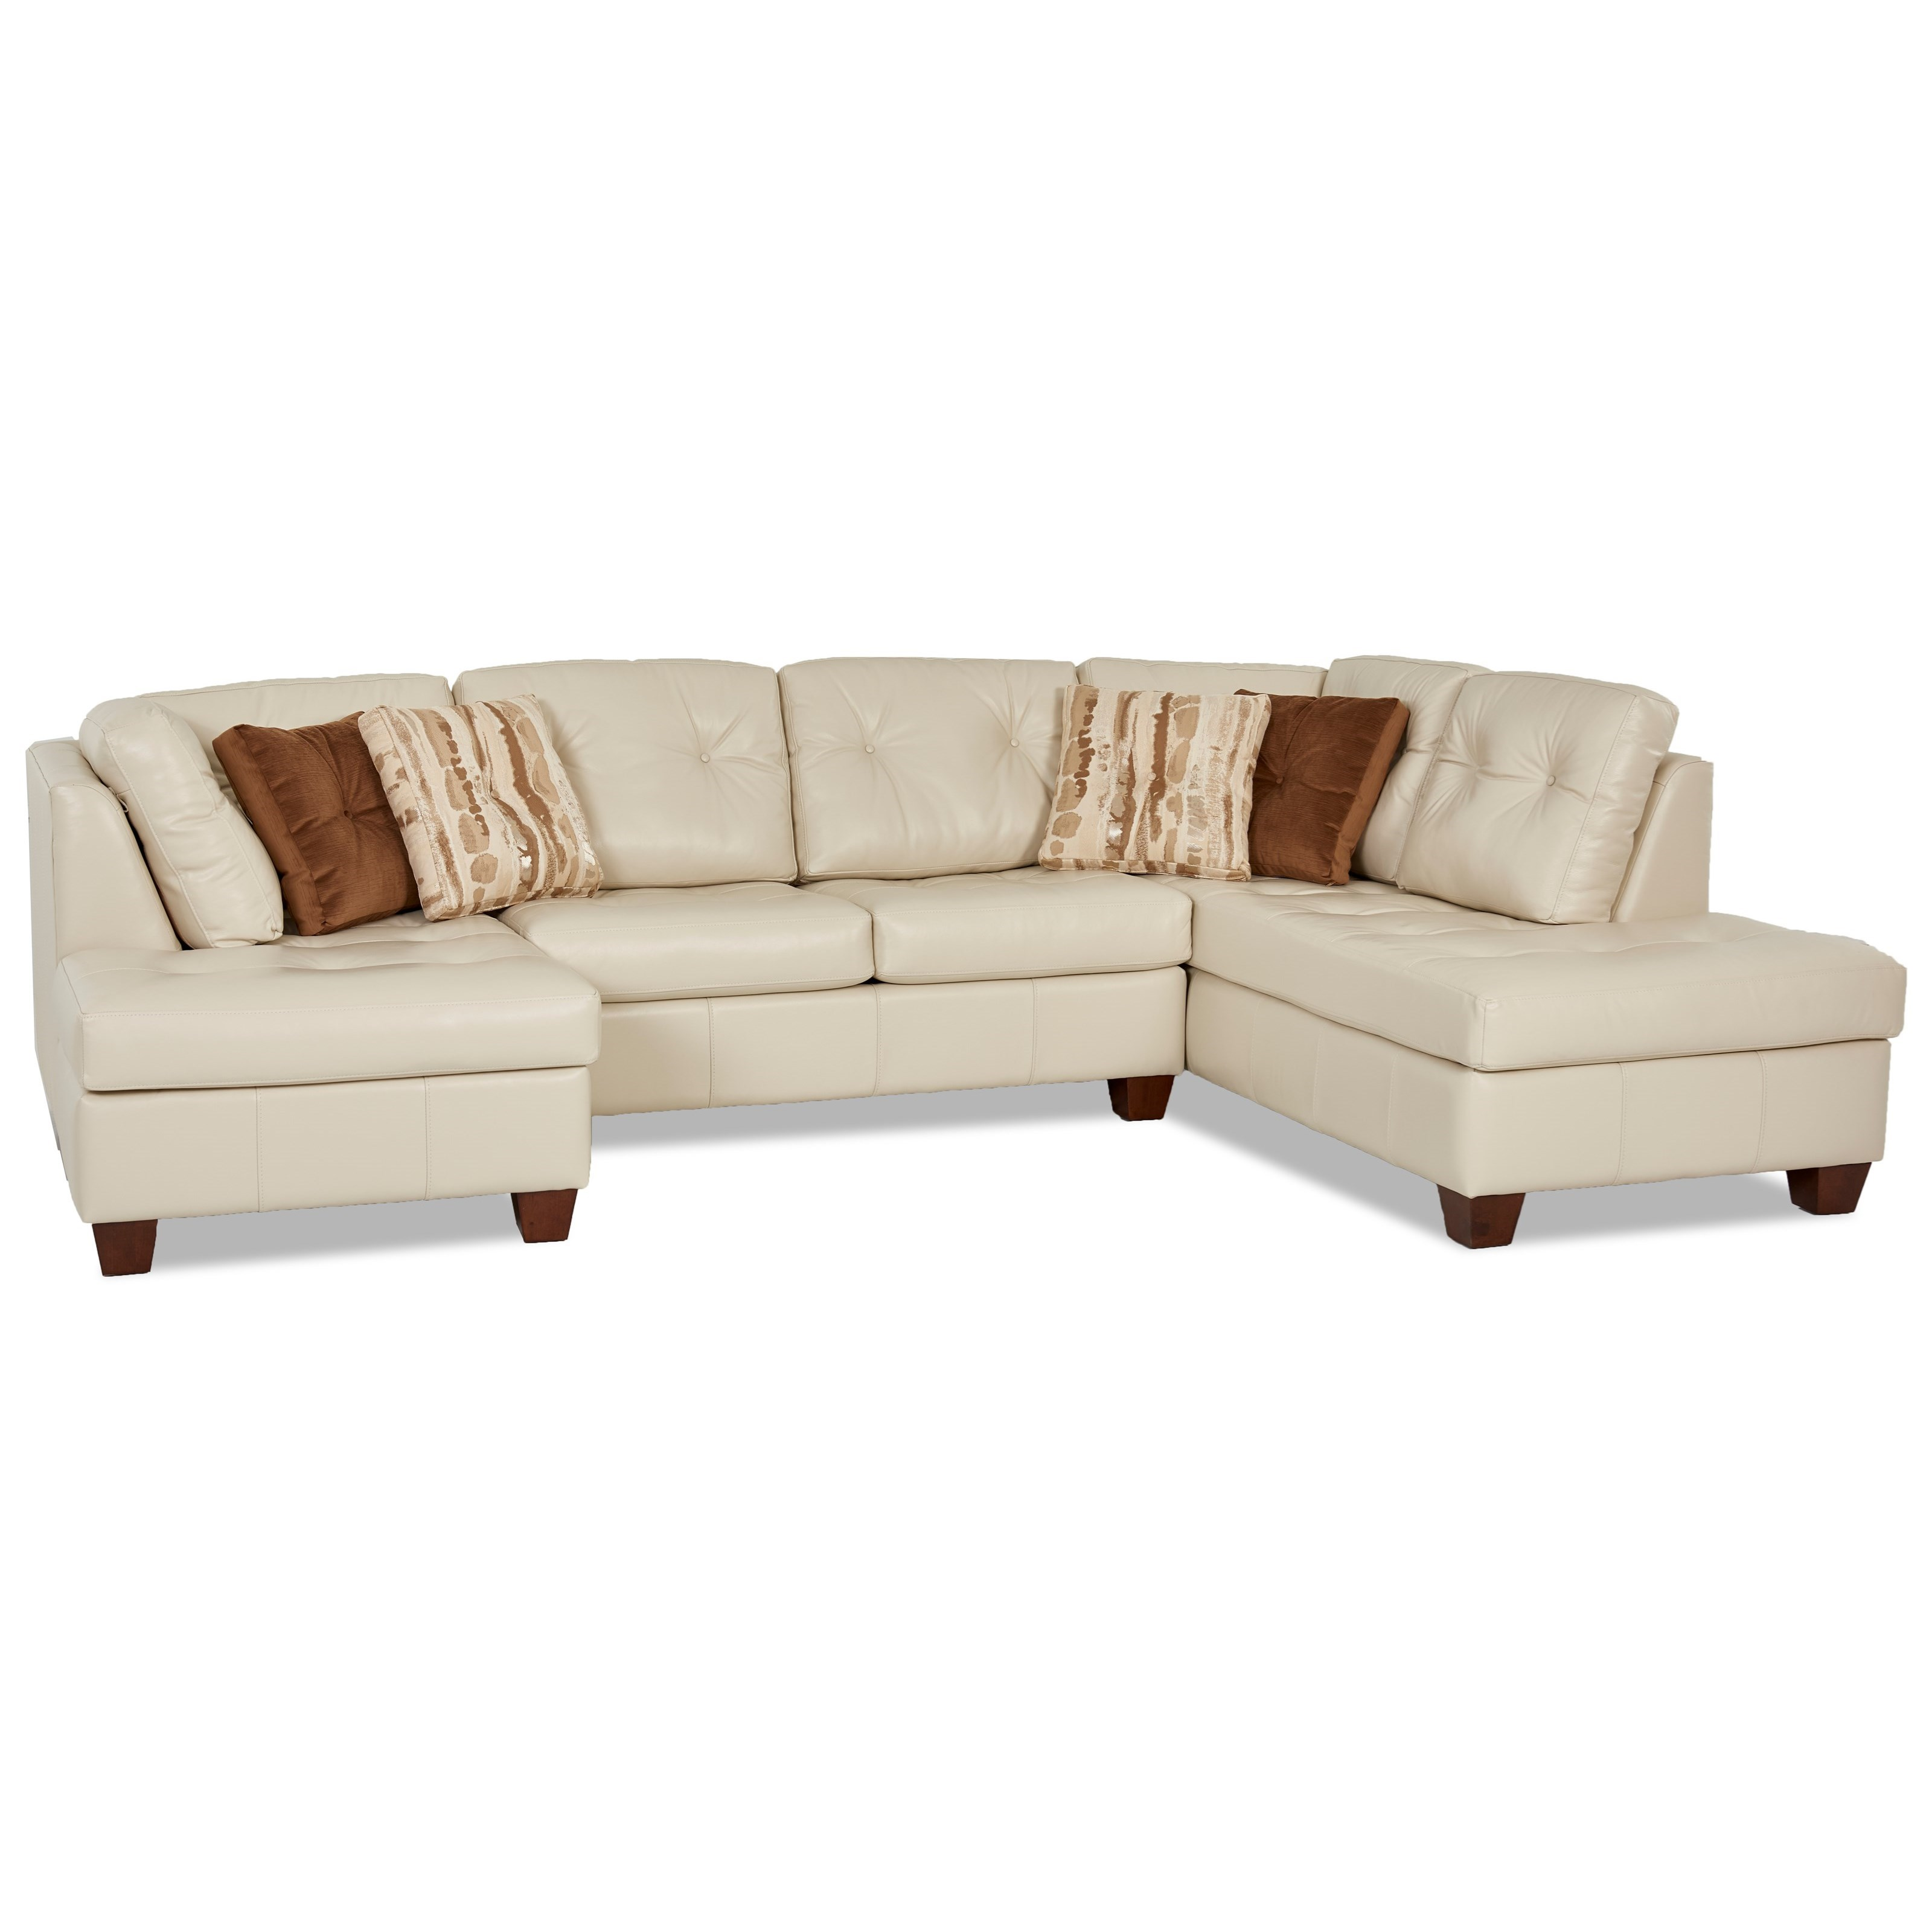 Klaussner Barton 3-Piece Sectional - Item Number: L39400-LCHASE+ALS+RSCHS